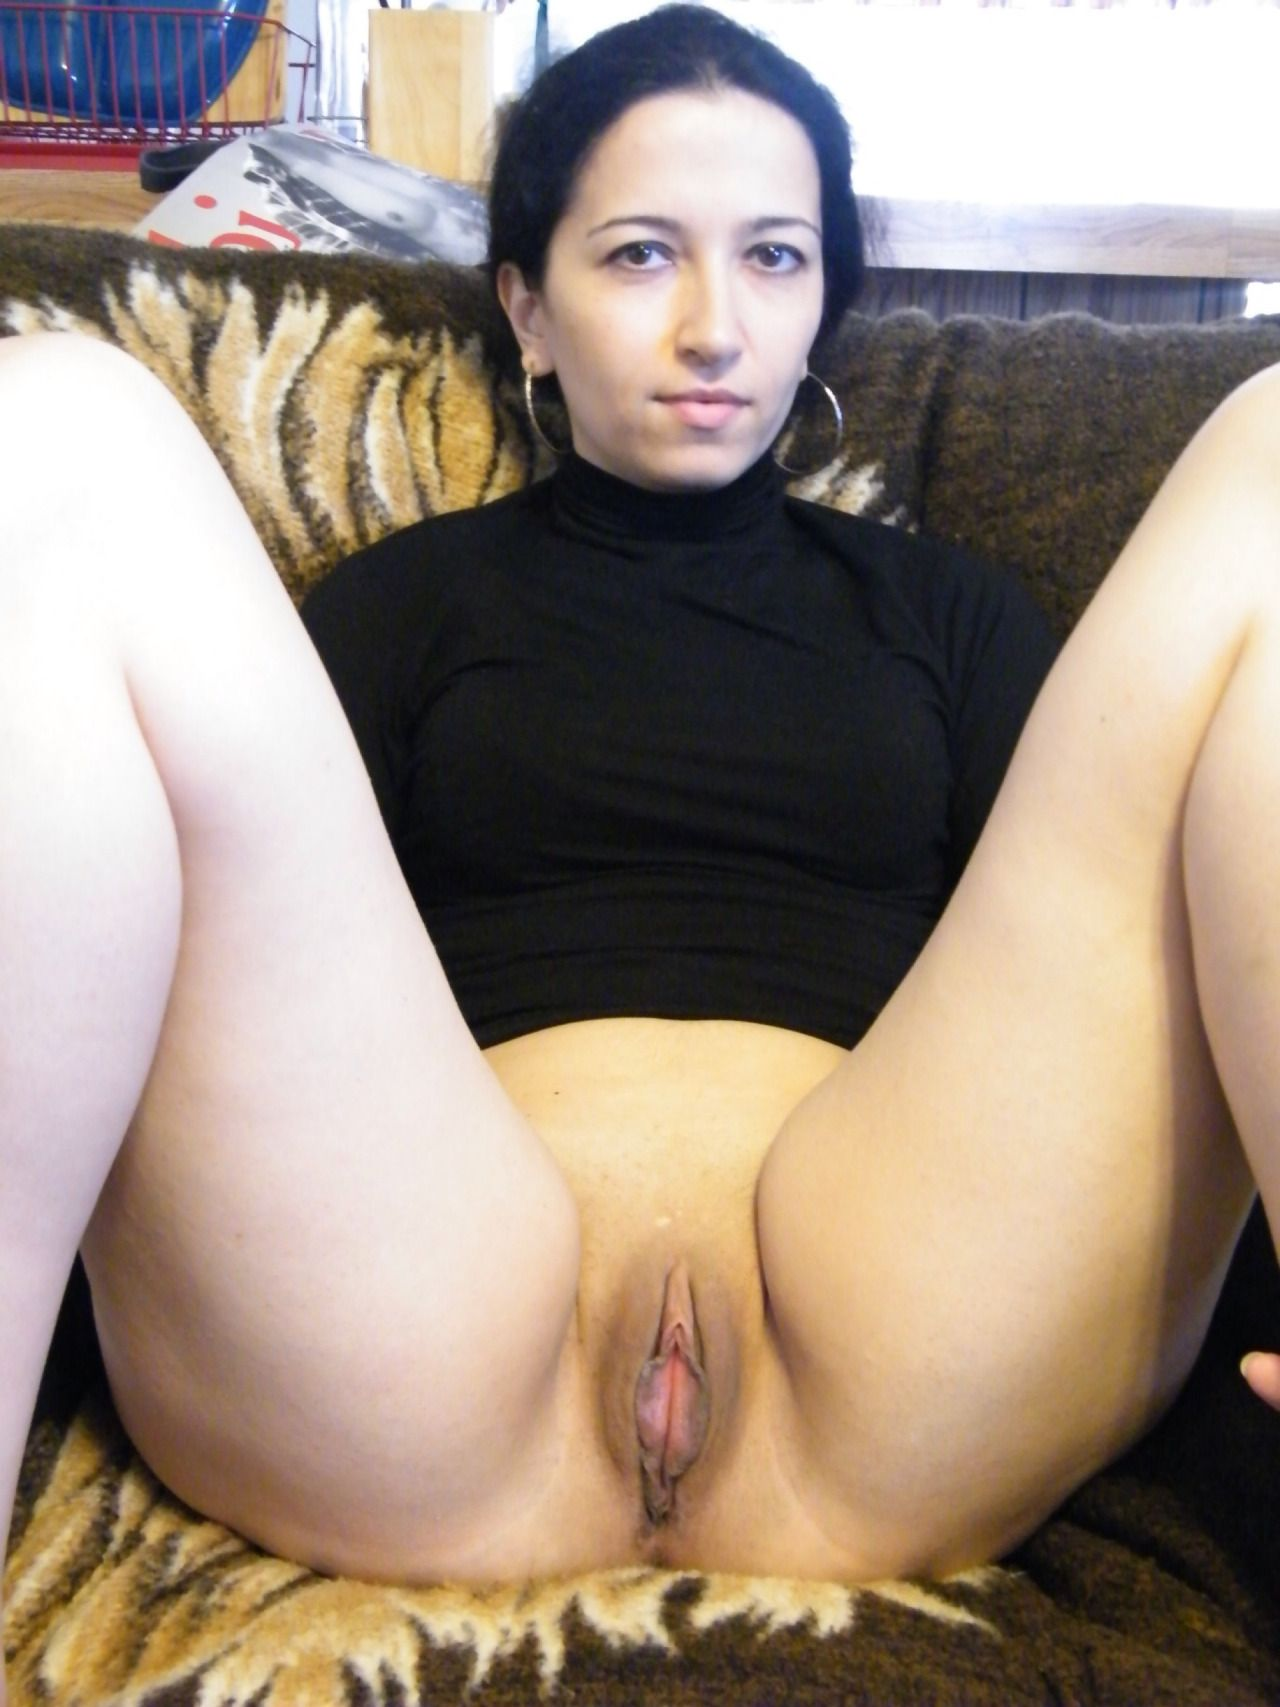 femme arabe sex dominatrice wannonce